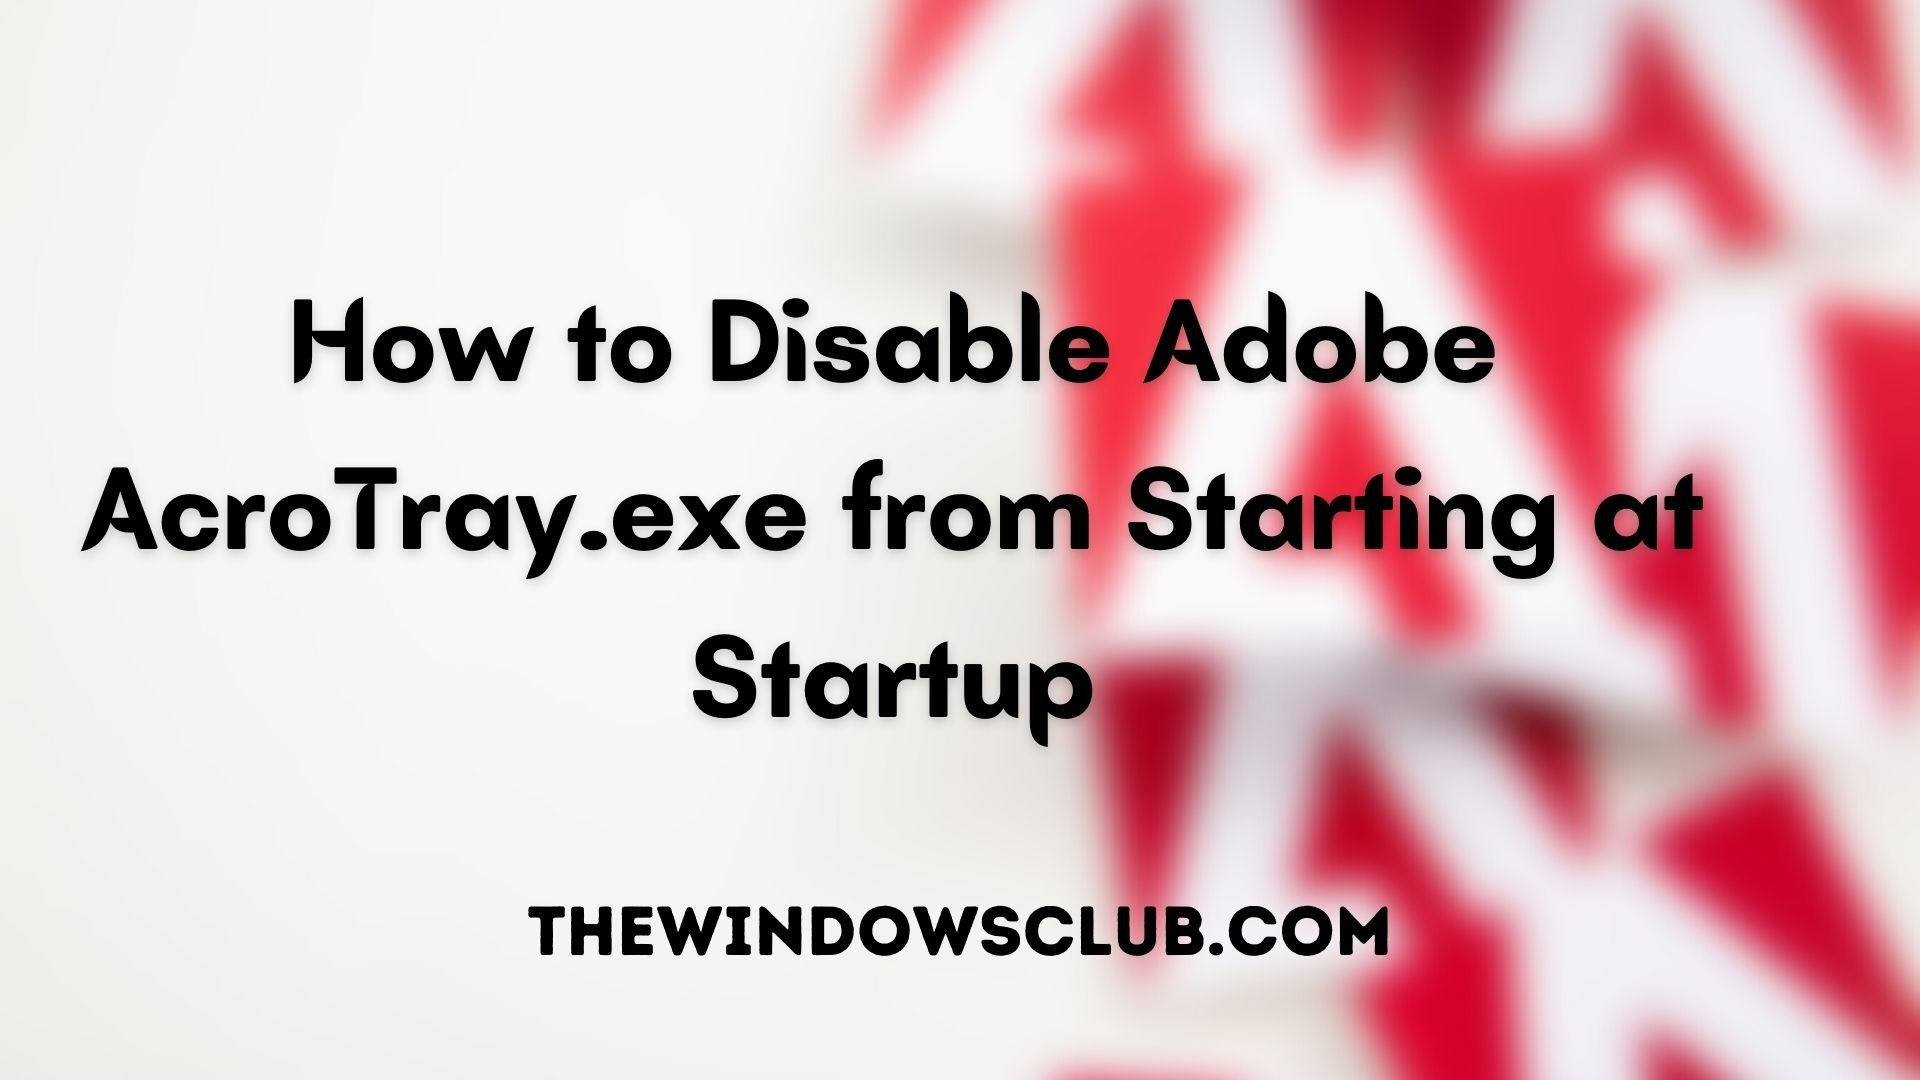 How to disable Adobe AcroTray.exe from Starting at Startup How-to-Disable-Adobe-AcroTray.exe-from-Starting-at-Startup.jpg